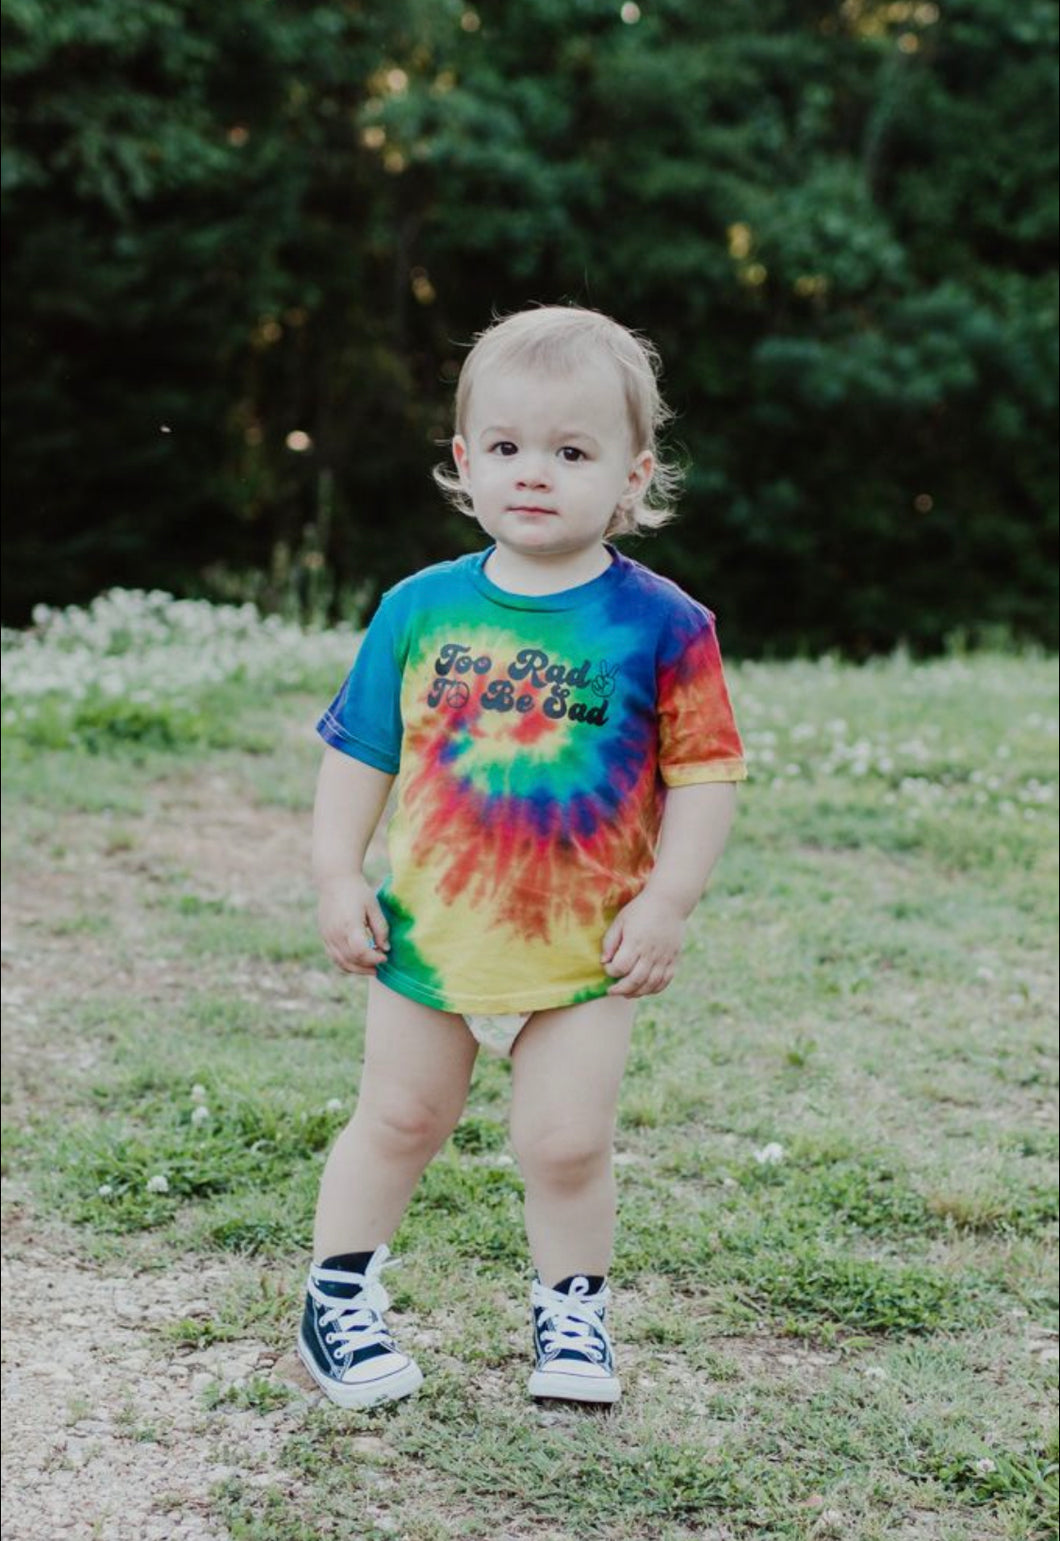 Too Rad To Be Sad Kids Tie Dye Tee